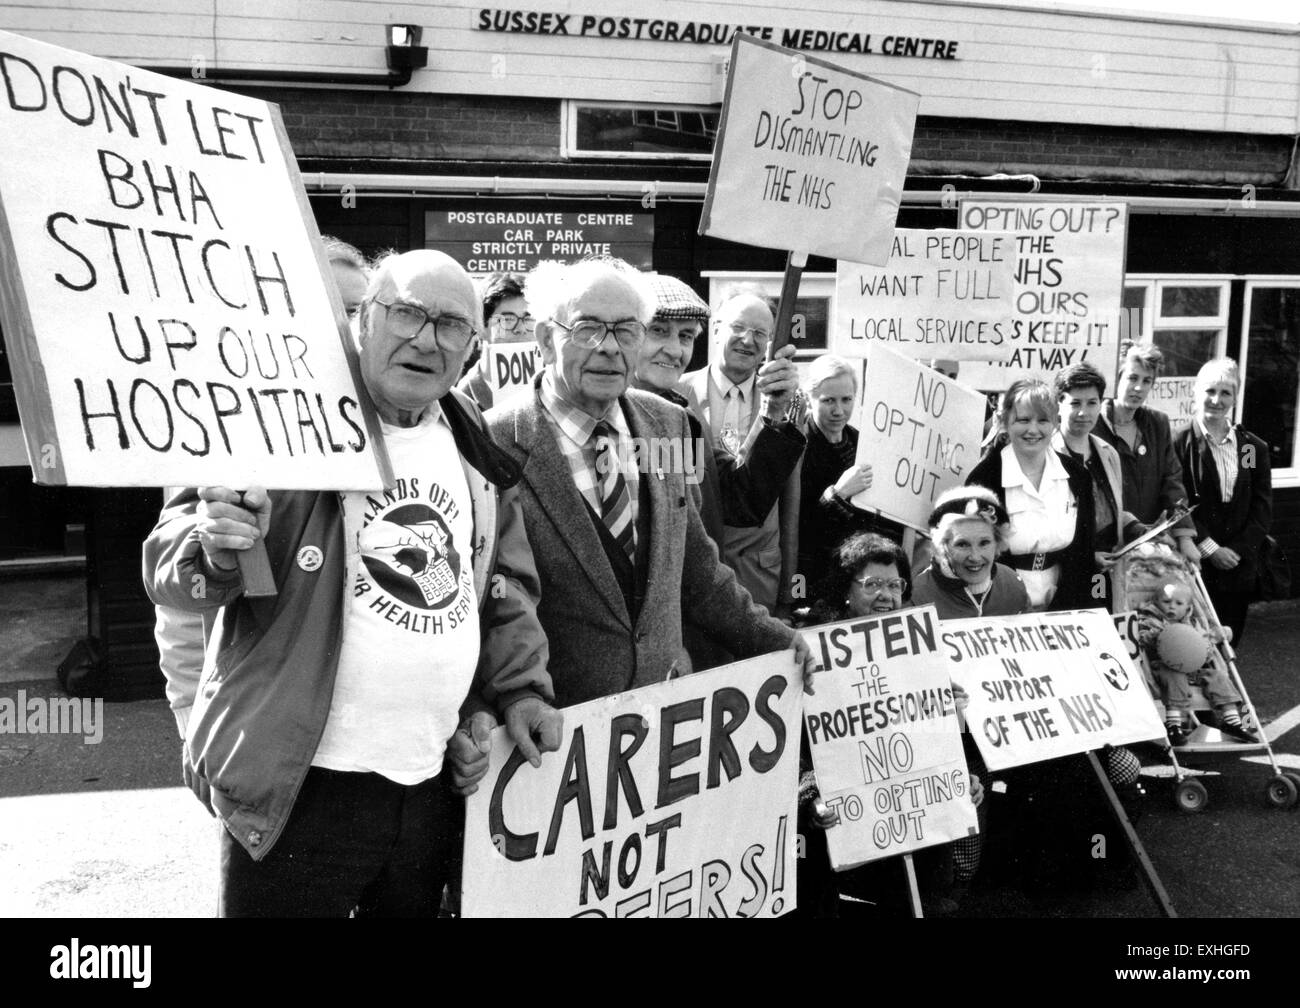 Protest against NHS cuts outside the Sussex Postgraduate medical Centre Brighton 1990 - Stock Image